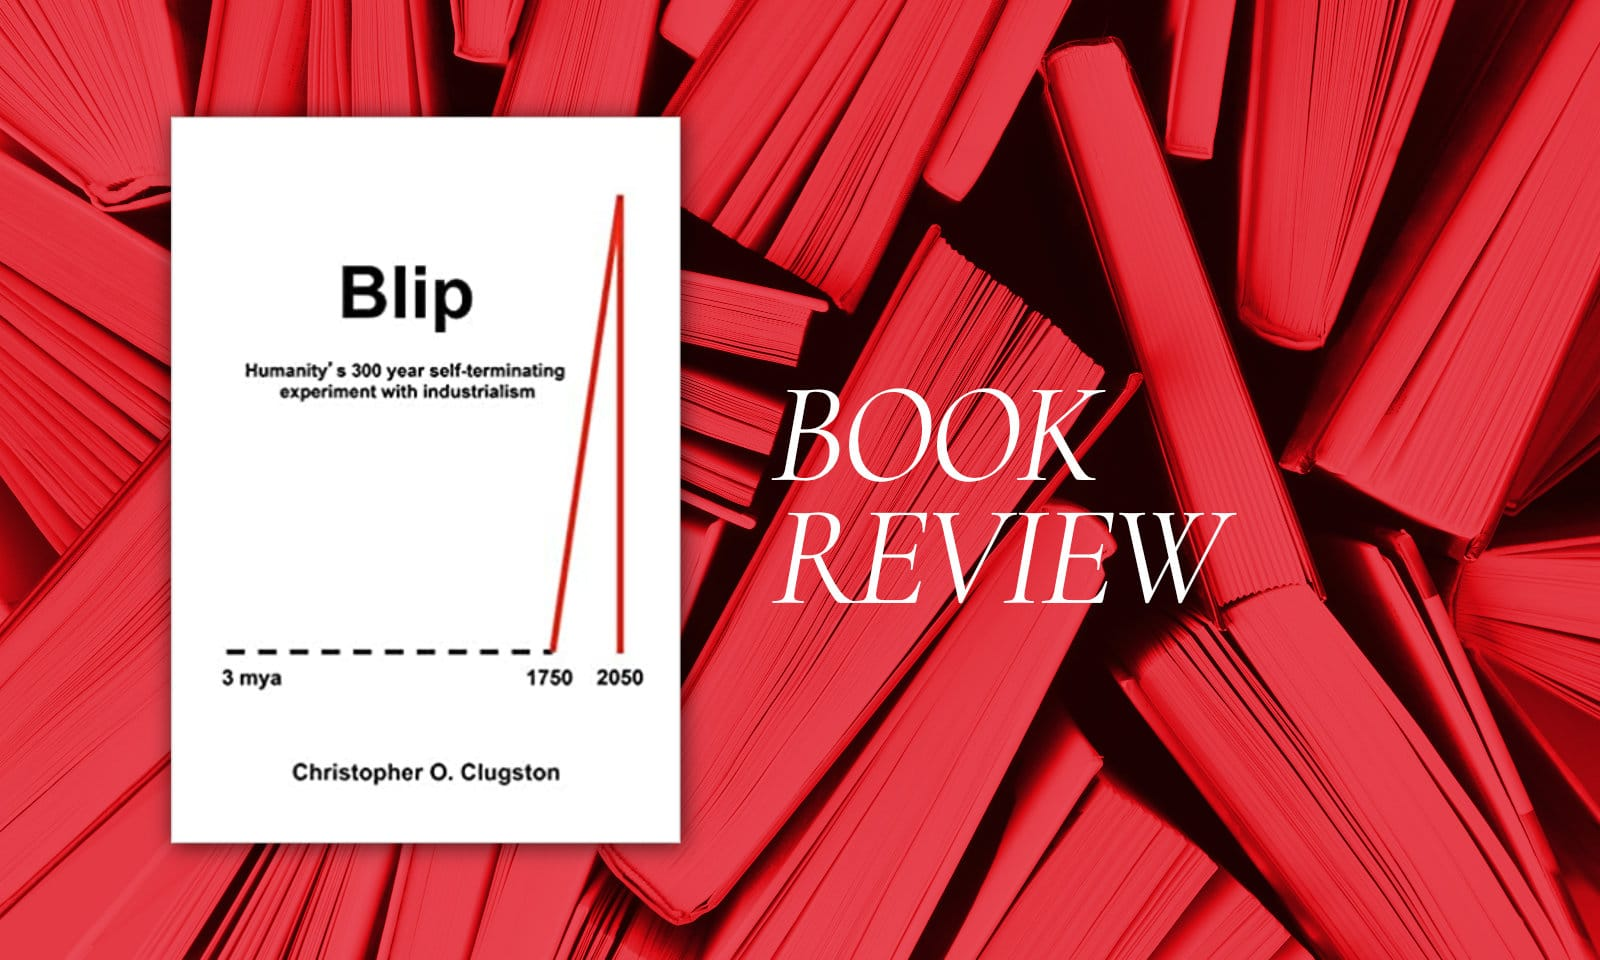 Book Review: Blip: Humanity's 300 Year Self-Terminating Experiment With Industrialism (Clugston)